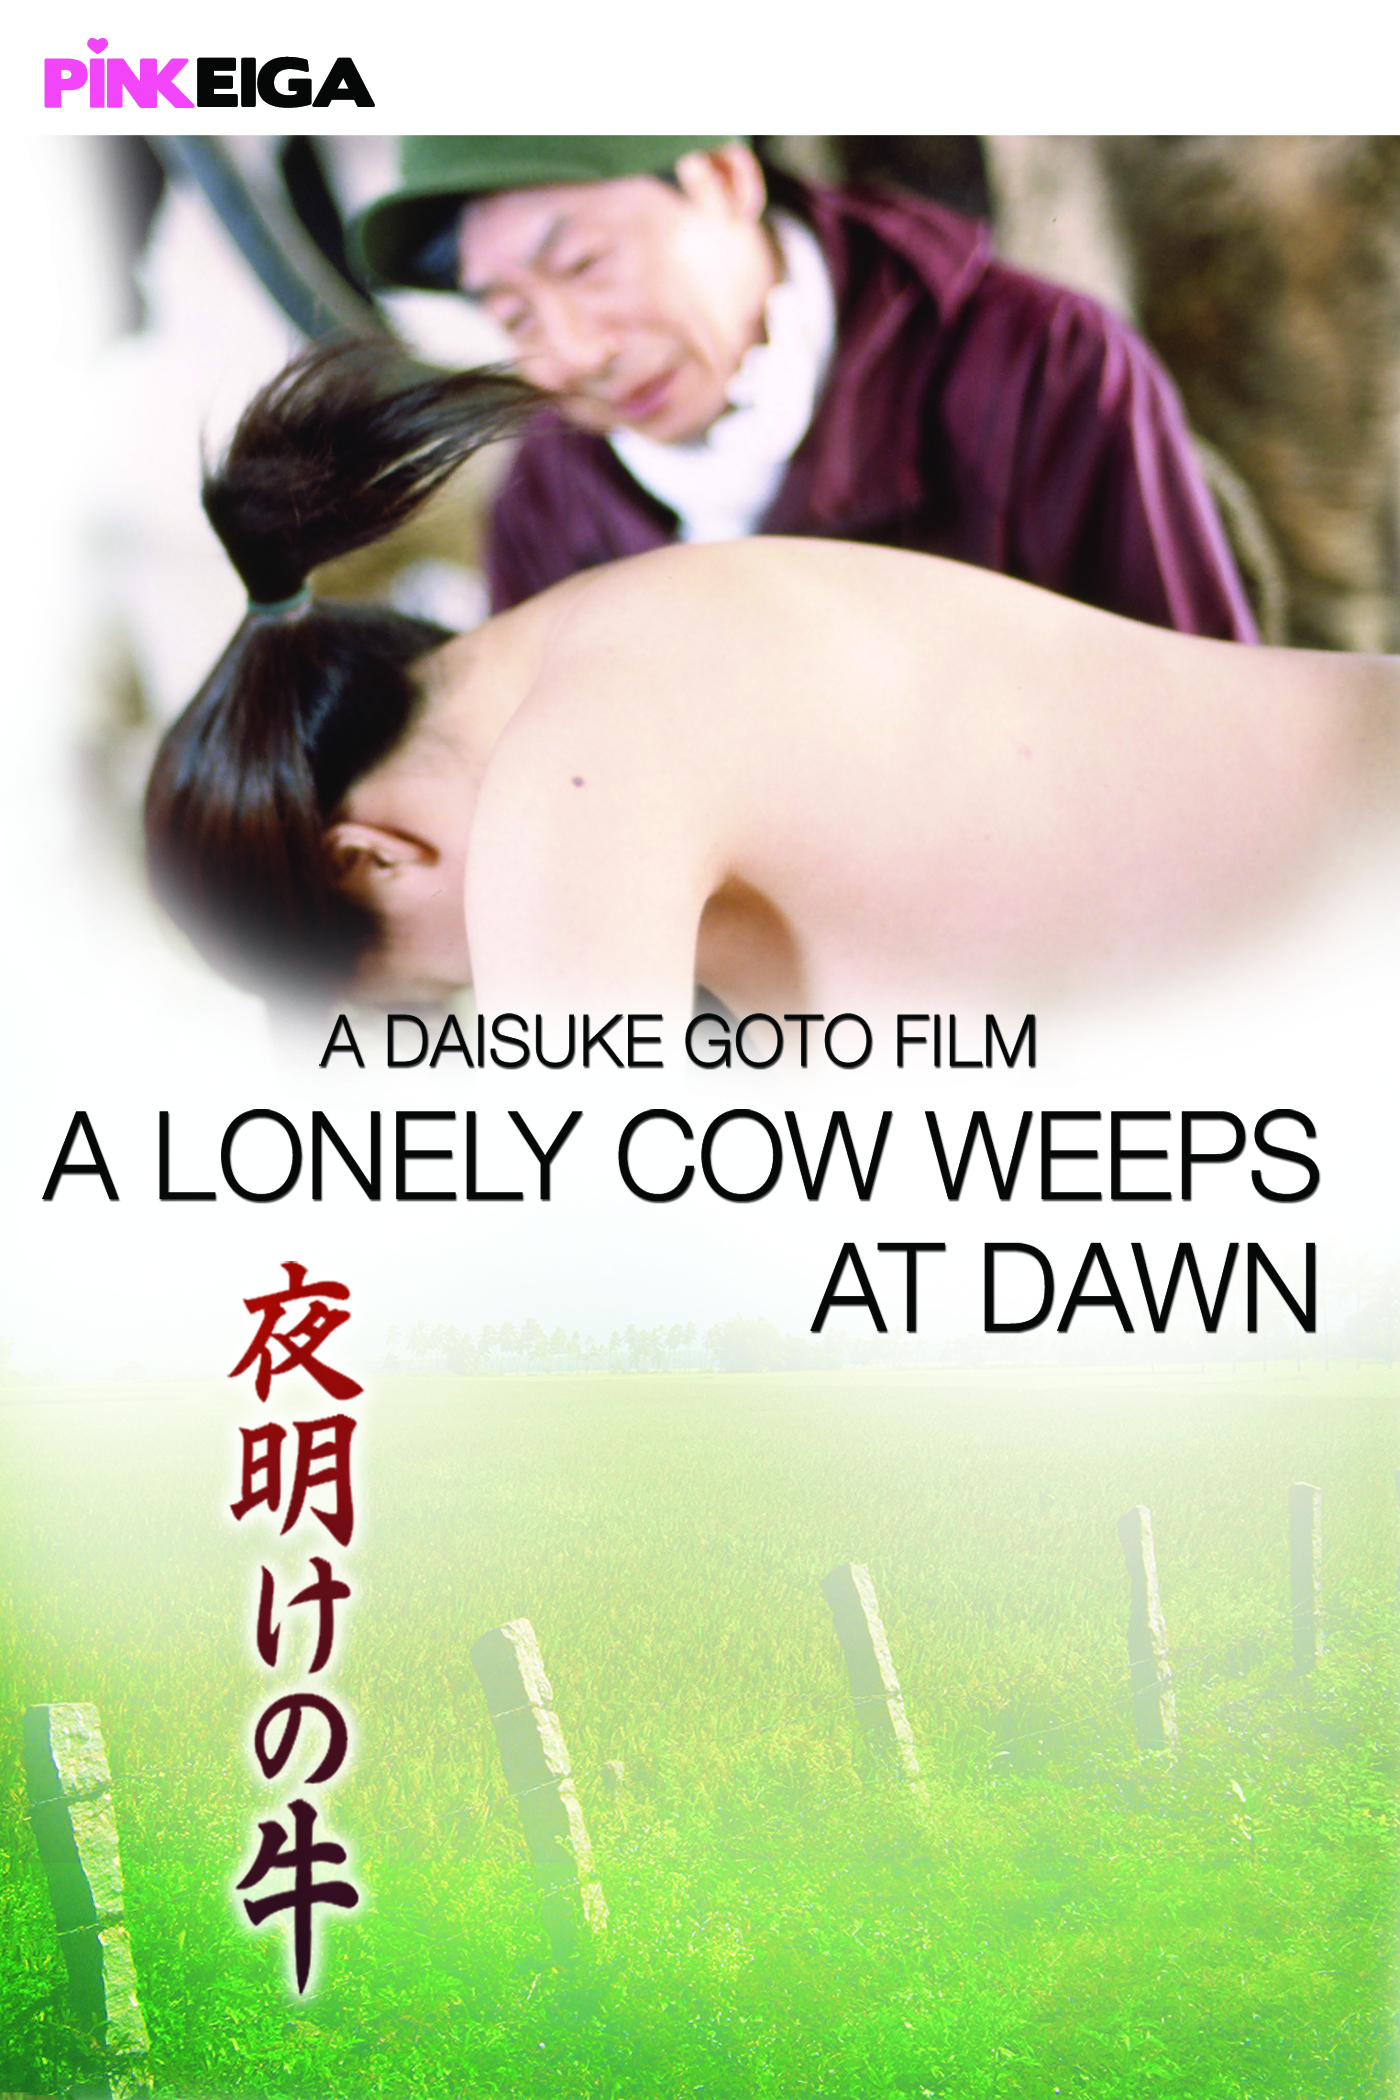 A Lonely Cow Weeps At Dawn -HD-  DOWNLOAD TO OWN